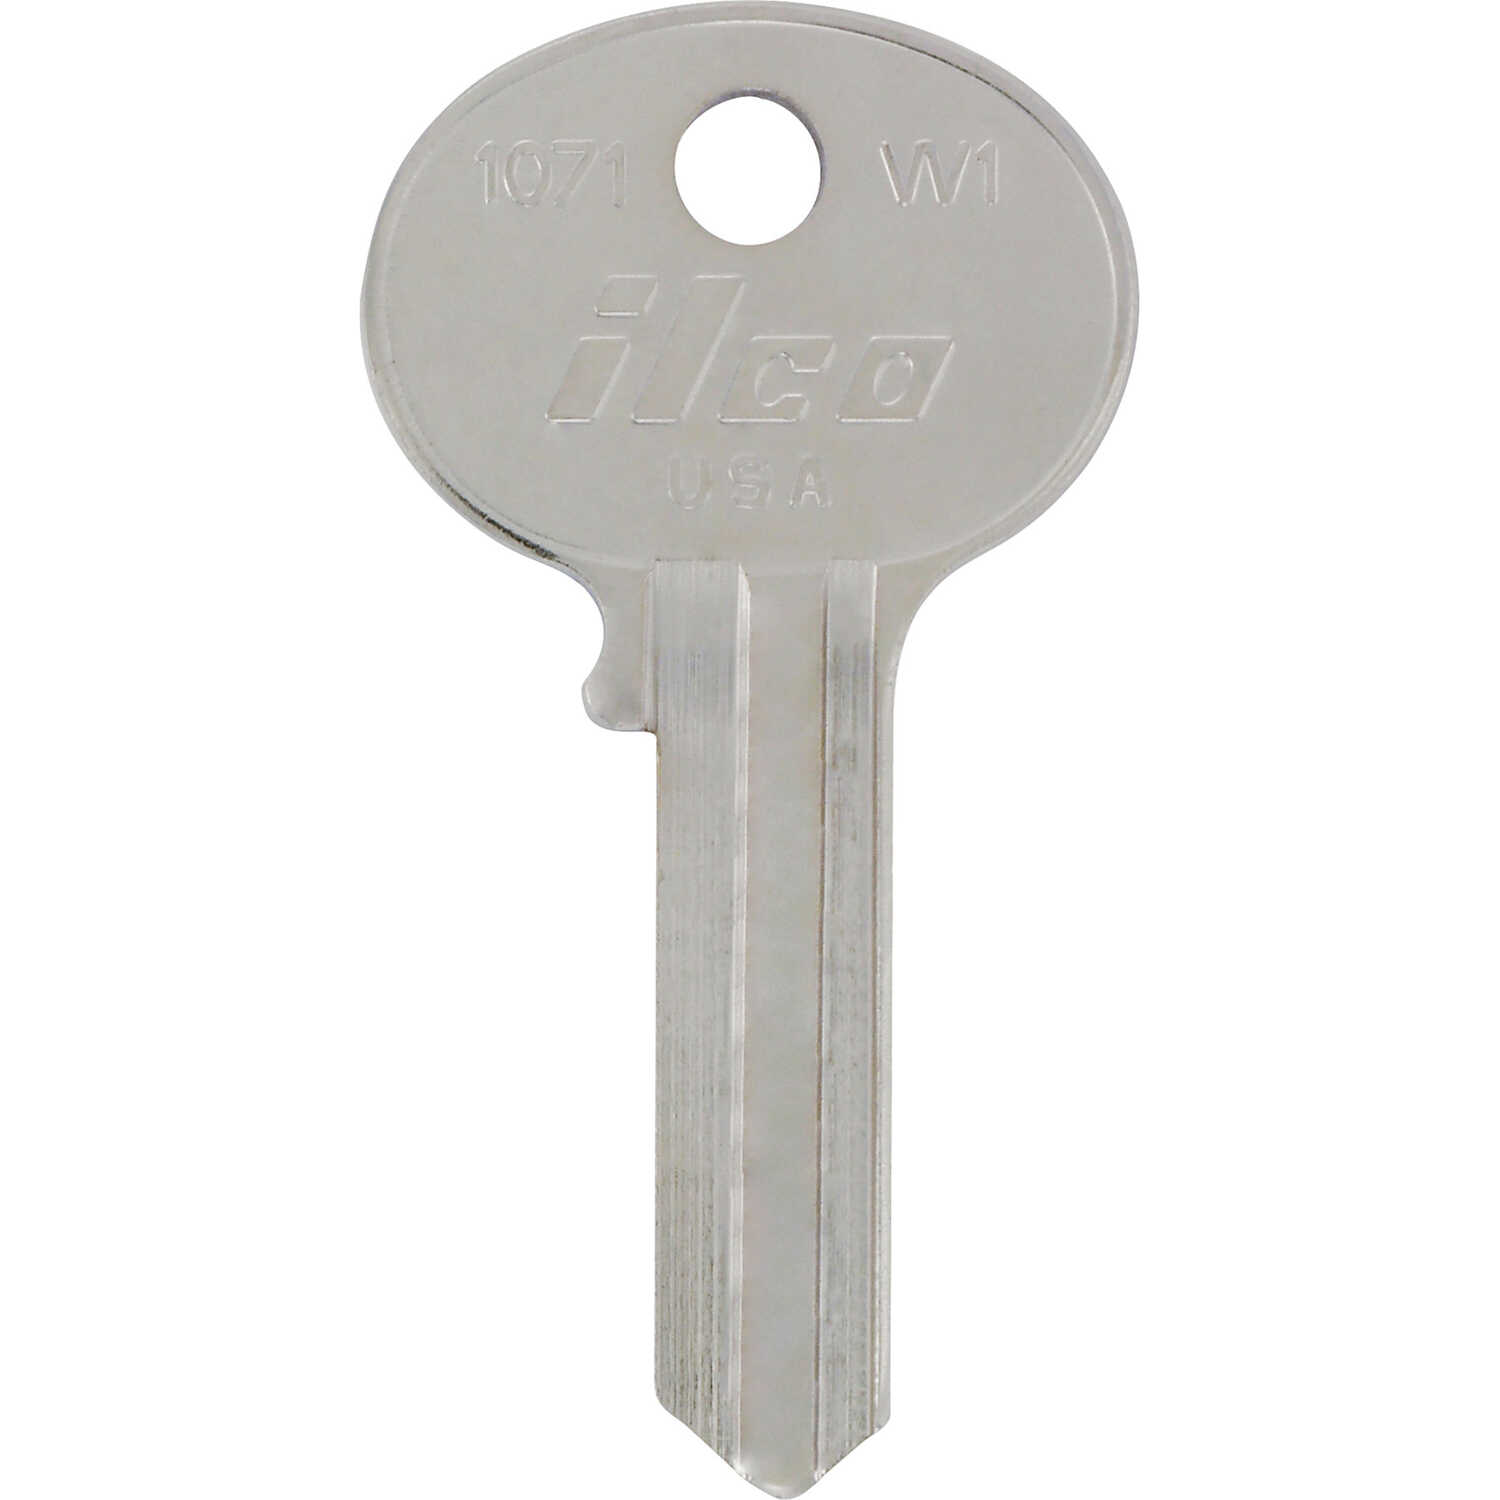 Hillman  KeyKrafter  House  Universal Key Blank  2008  W1  Single sided